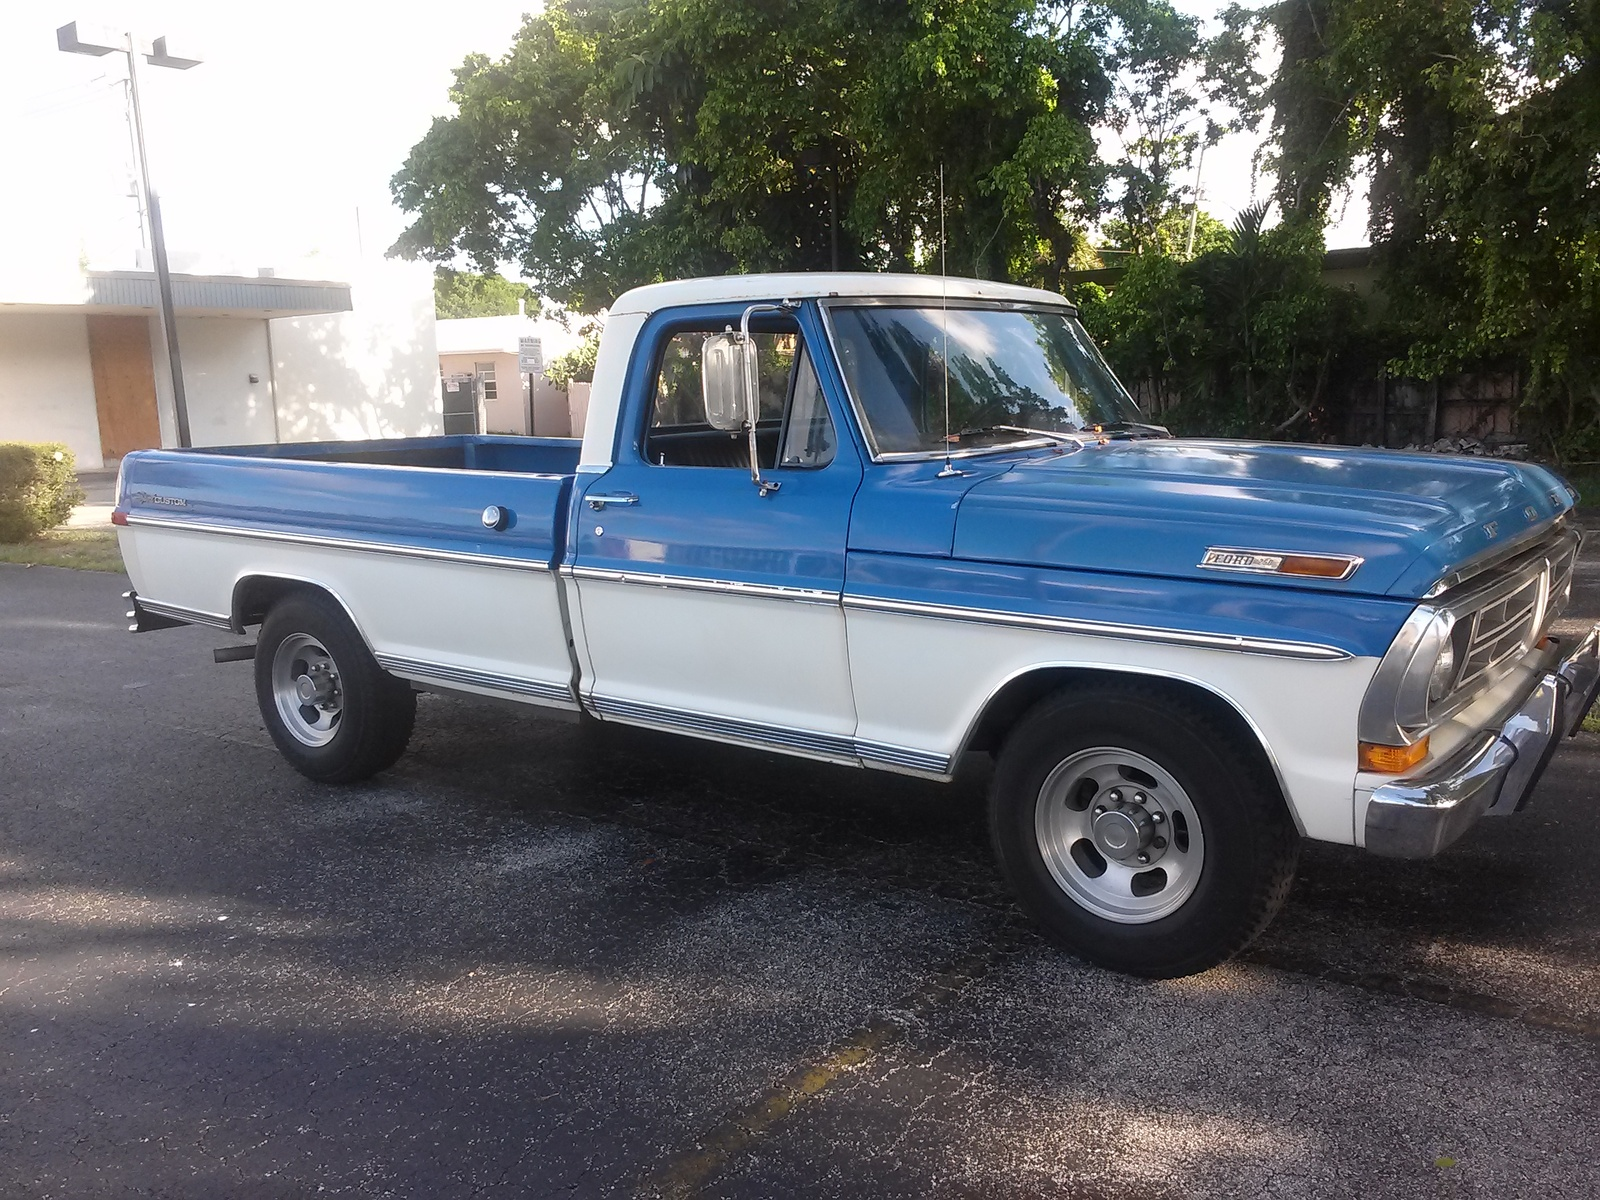 Ford F 250 Questions What Would Be A Good Choice Of Fuel Injected F250 Engine Wiring Harness New Trannny As Well And Maybe Drive Shaft Computer Ect But Then It Off To The Paint Shop Like